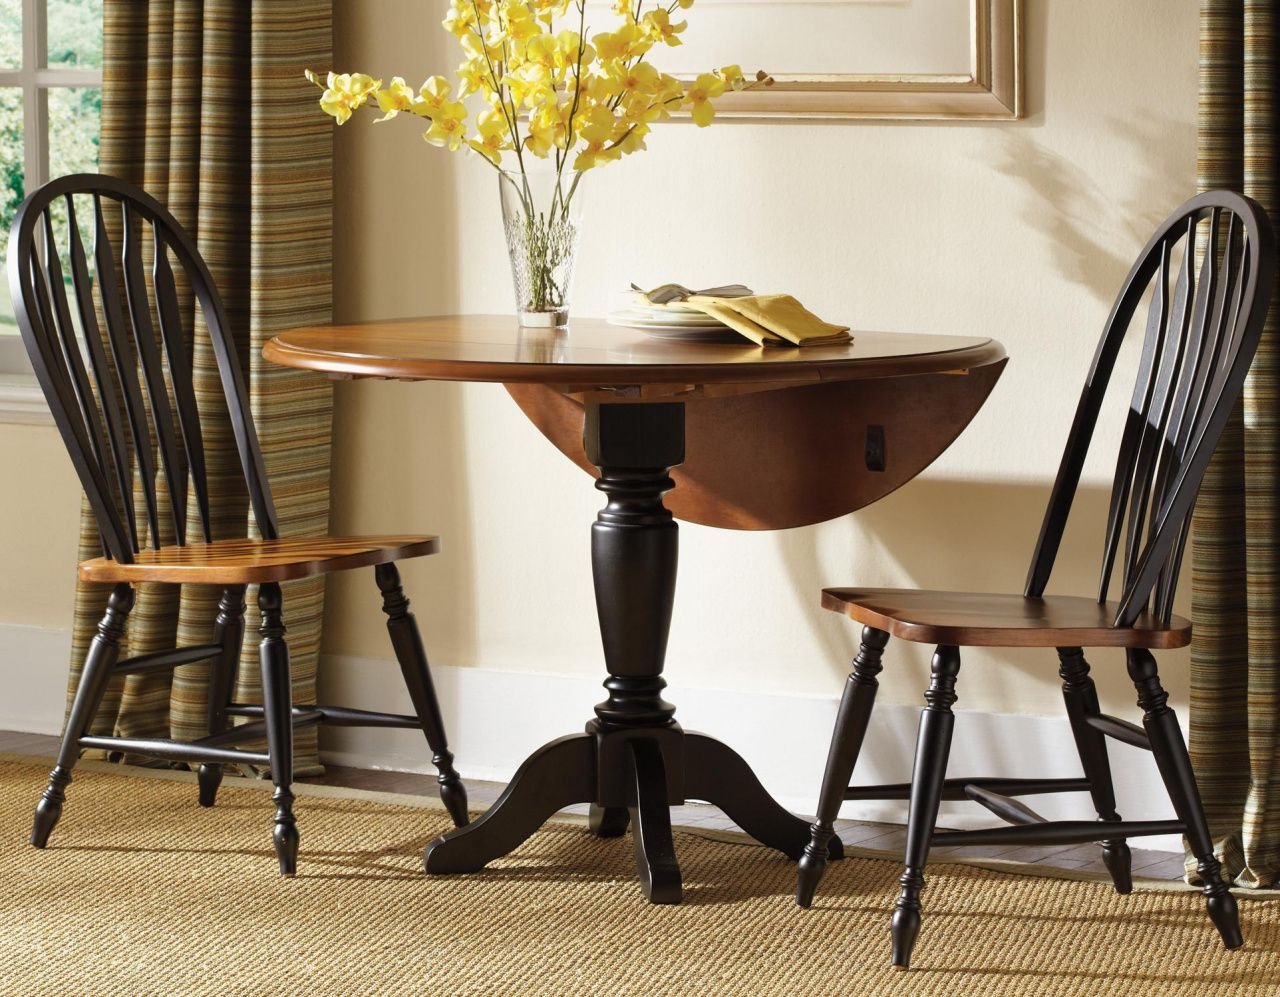 Small Round Drop Leaf Kitchen Table Home Office Desk Furniture Check More At Http Www Nik Traditional Dining Room Table Dining Table Chairs Drop Leaf Table